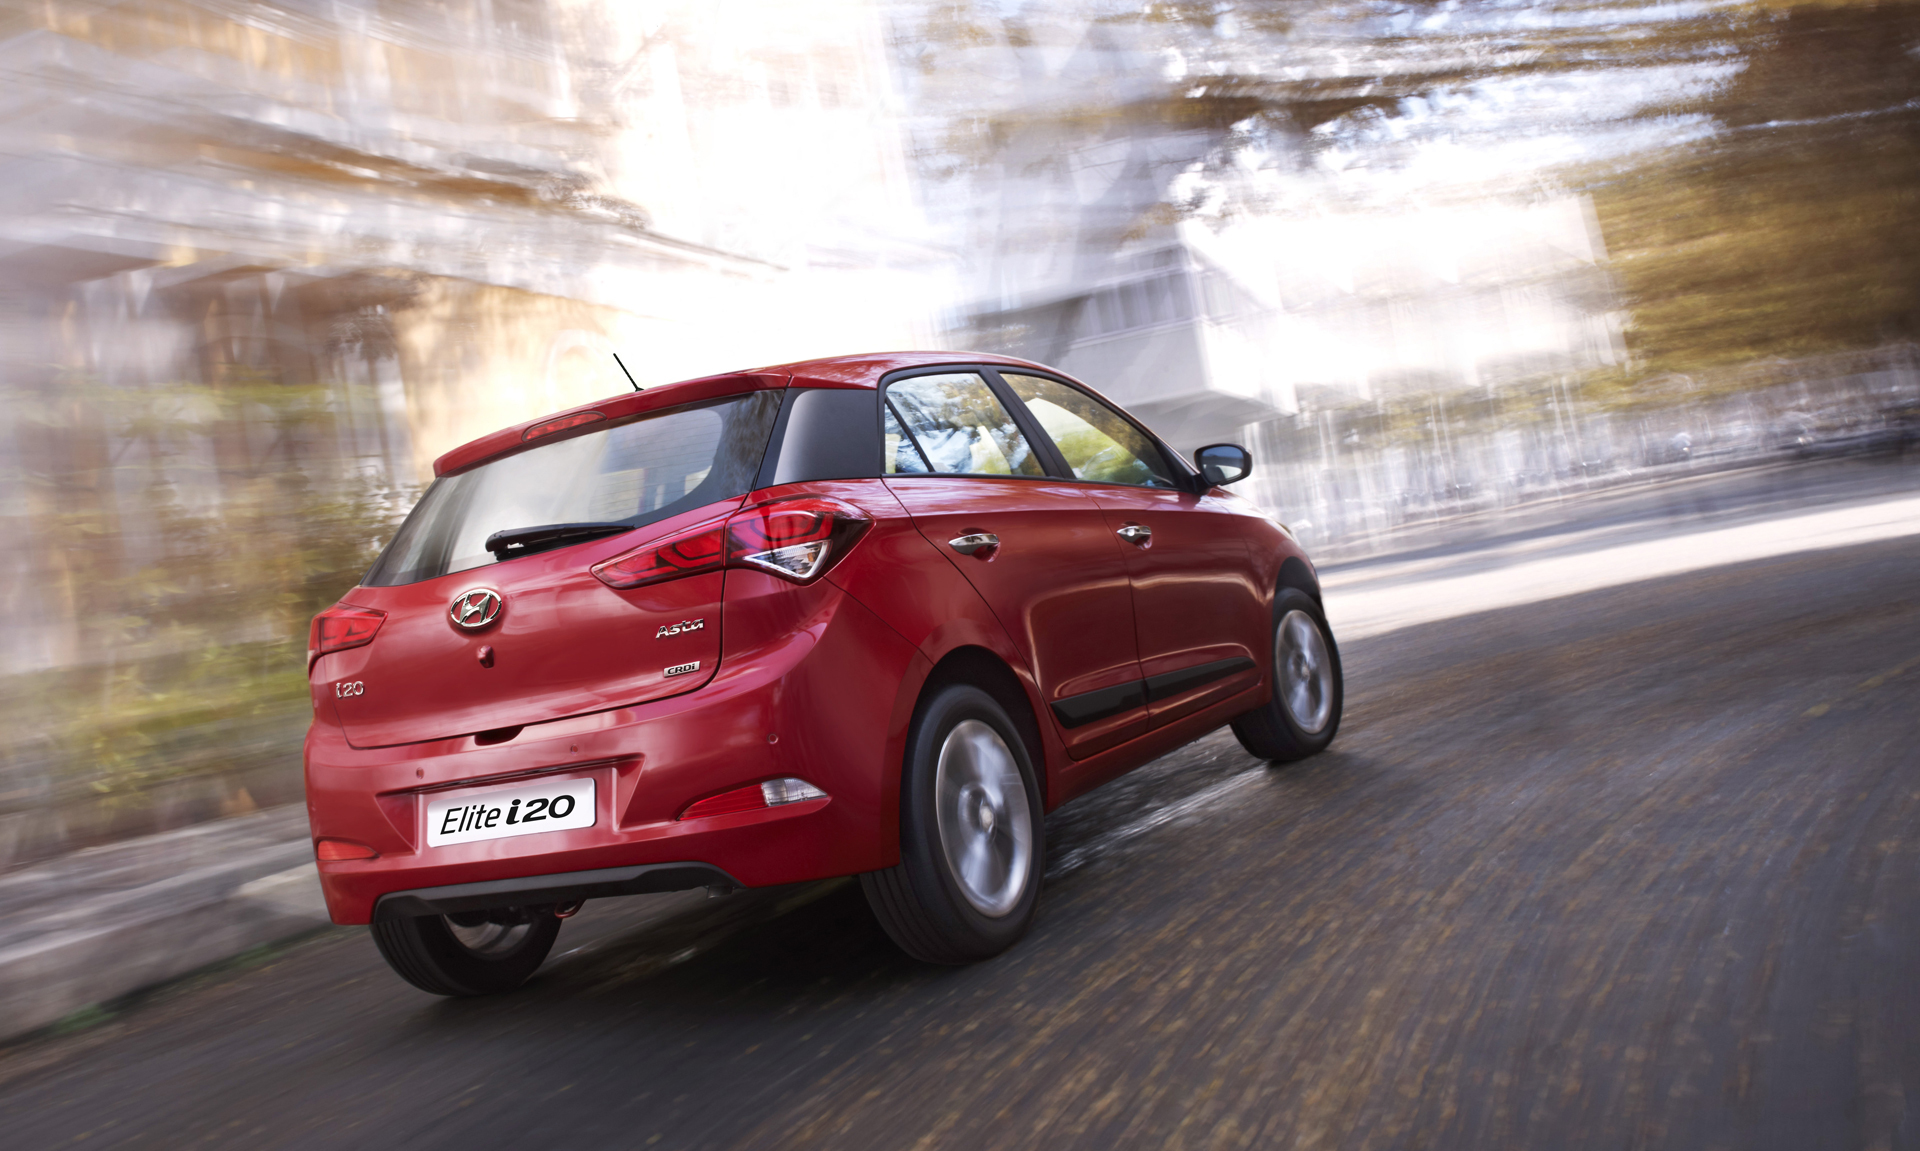 2017 Hyundai i20 red color rear side view bulr city background hd 1920x1151